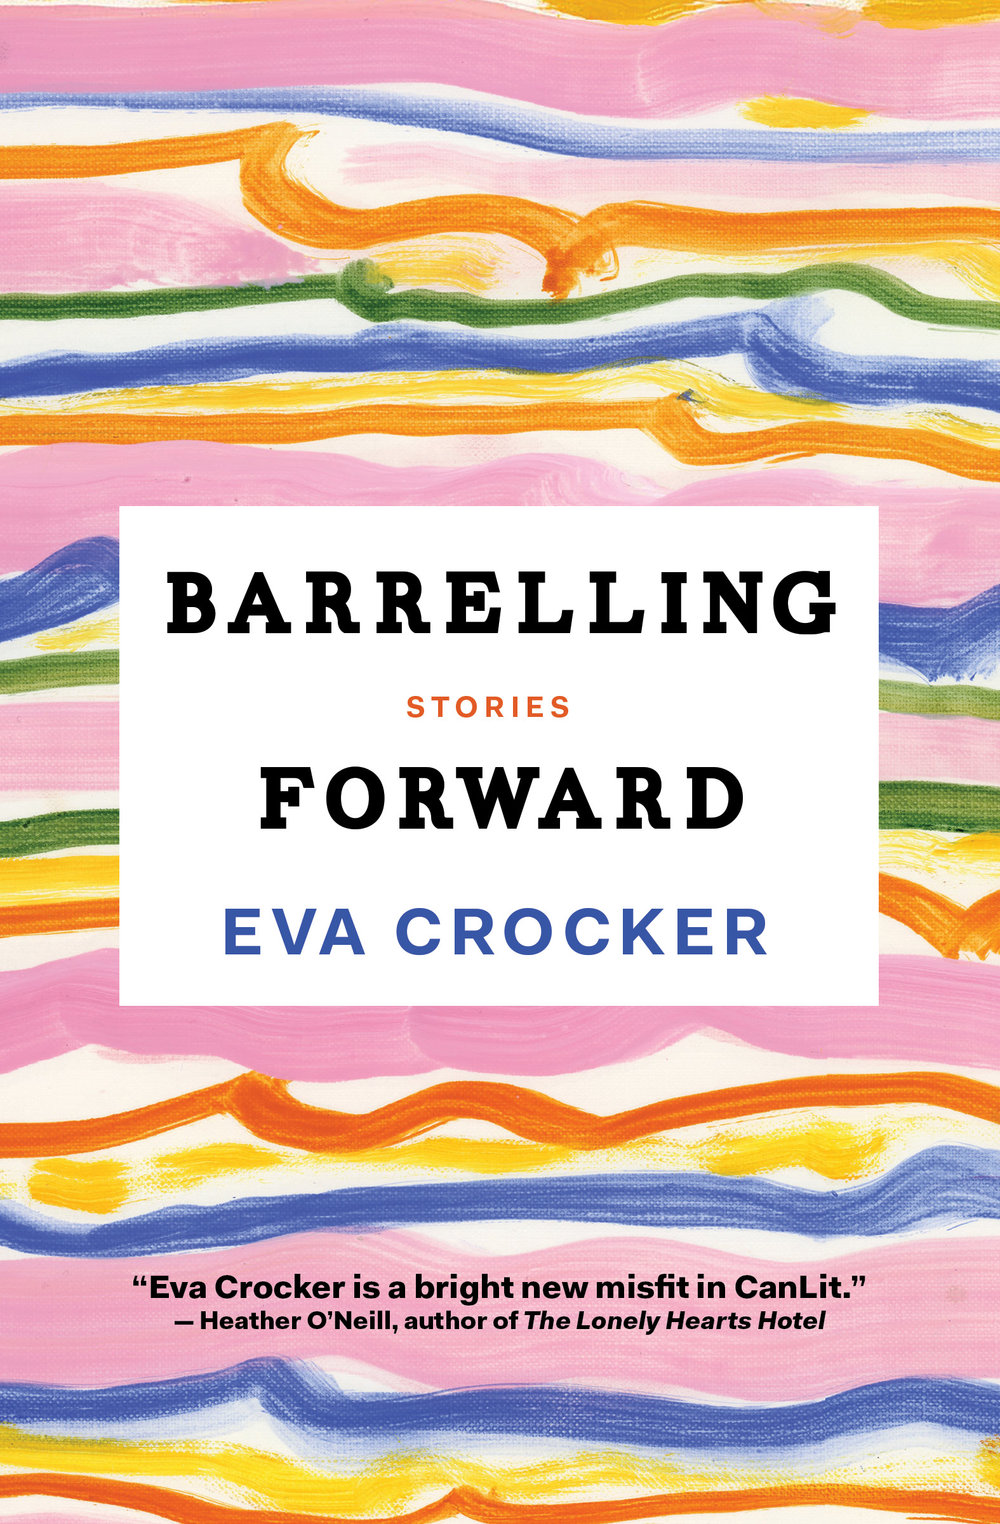 Eva Crocker. Barrelling Forward. House of Anansi. $19.95, 264 pp., ISBN: 9781487001438